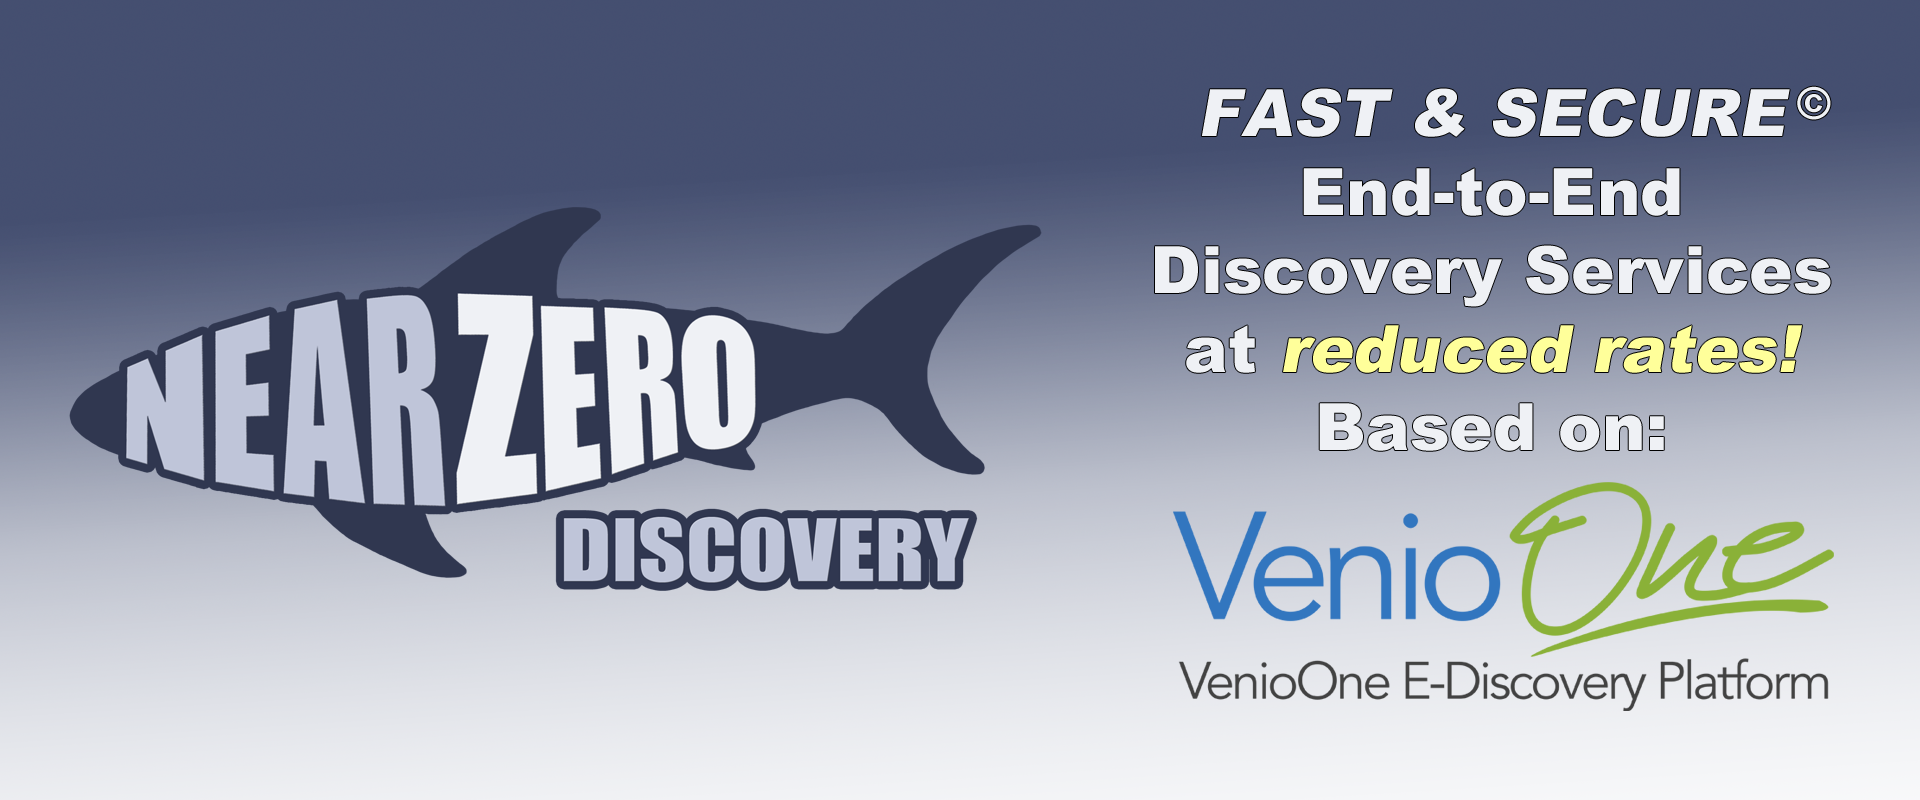 REW Computing Inc.'s NearZero Discovery service offers full end-to-end eDiscovery services for Newmarket, Toronto, the GTA, and Ontario, Canada.